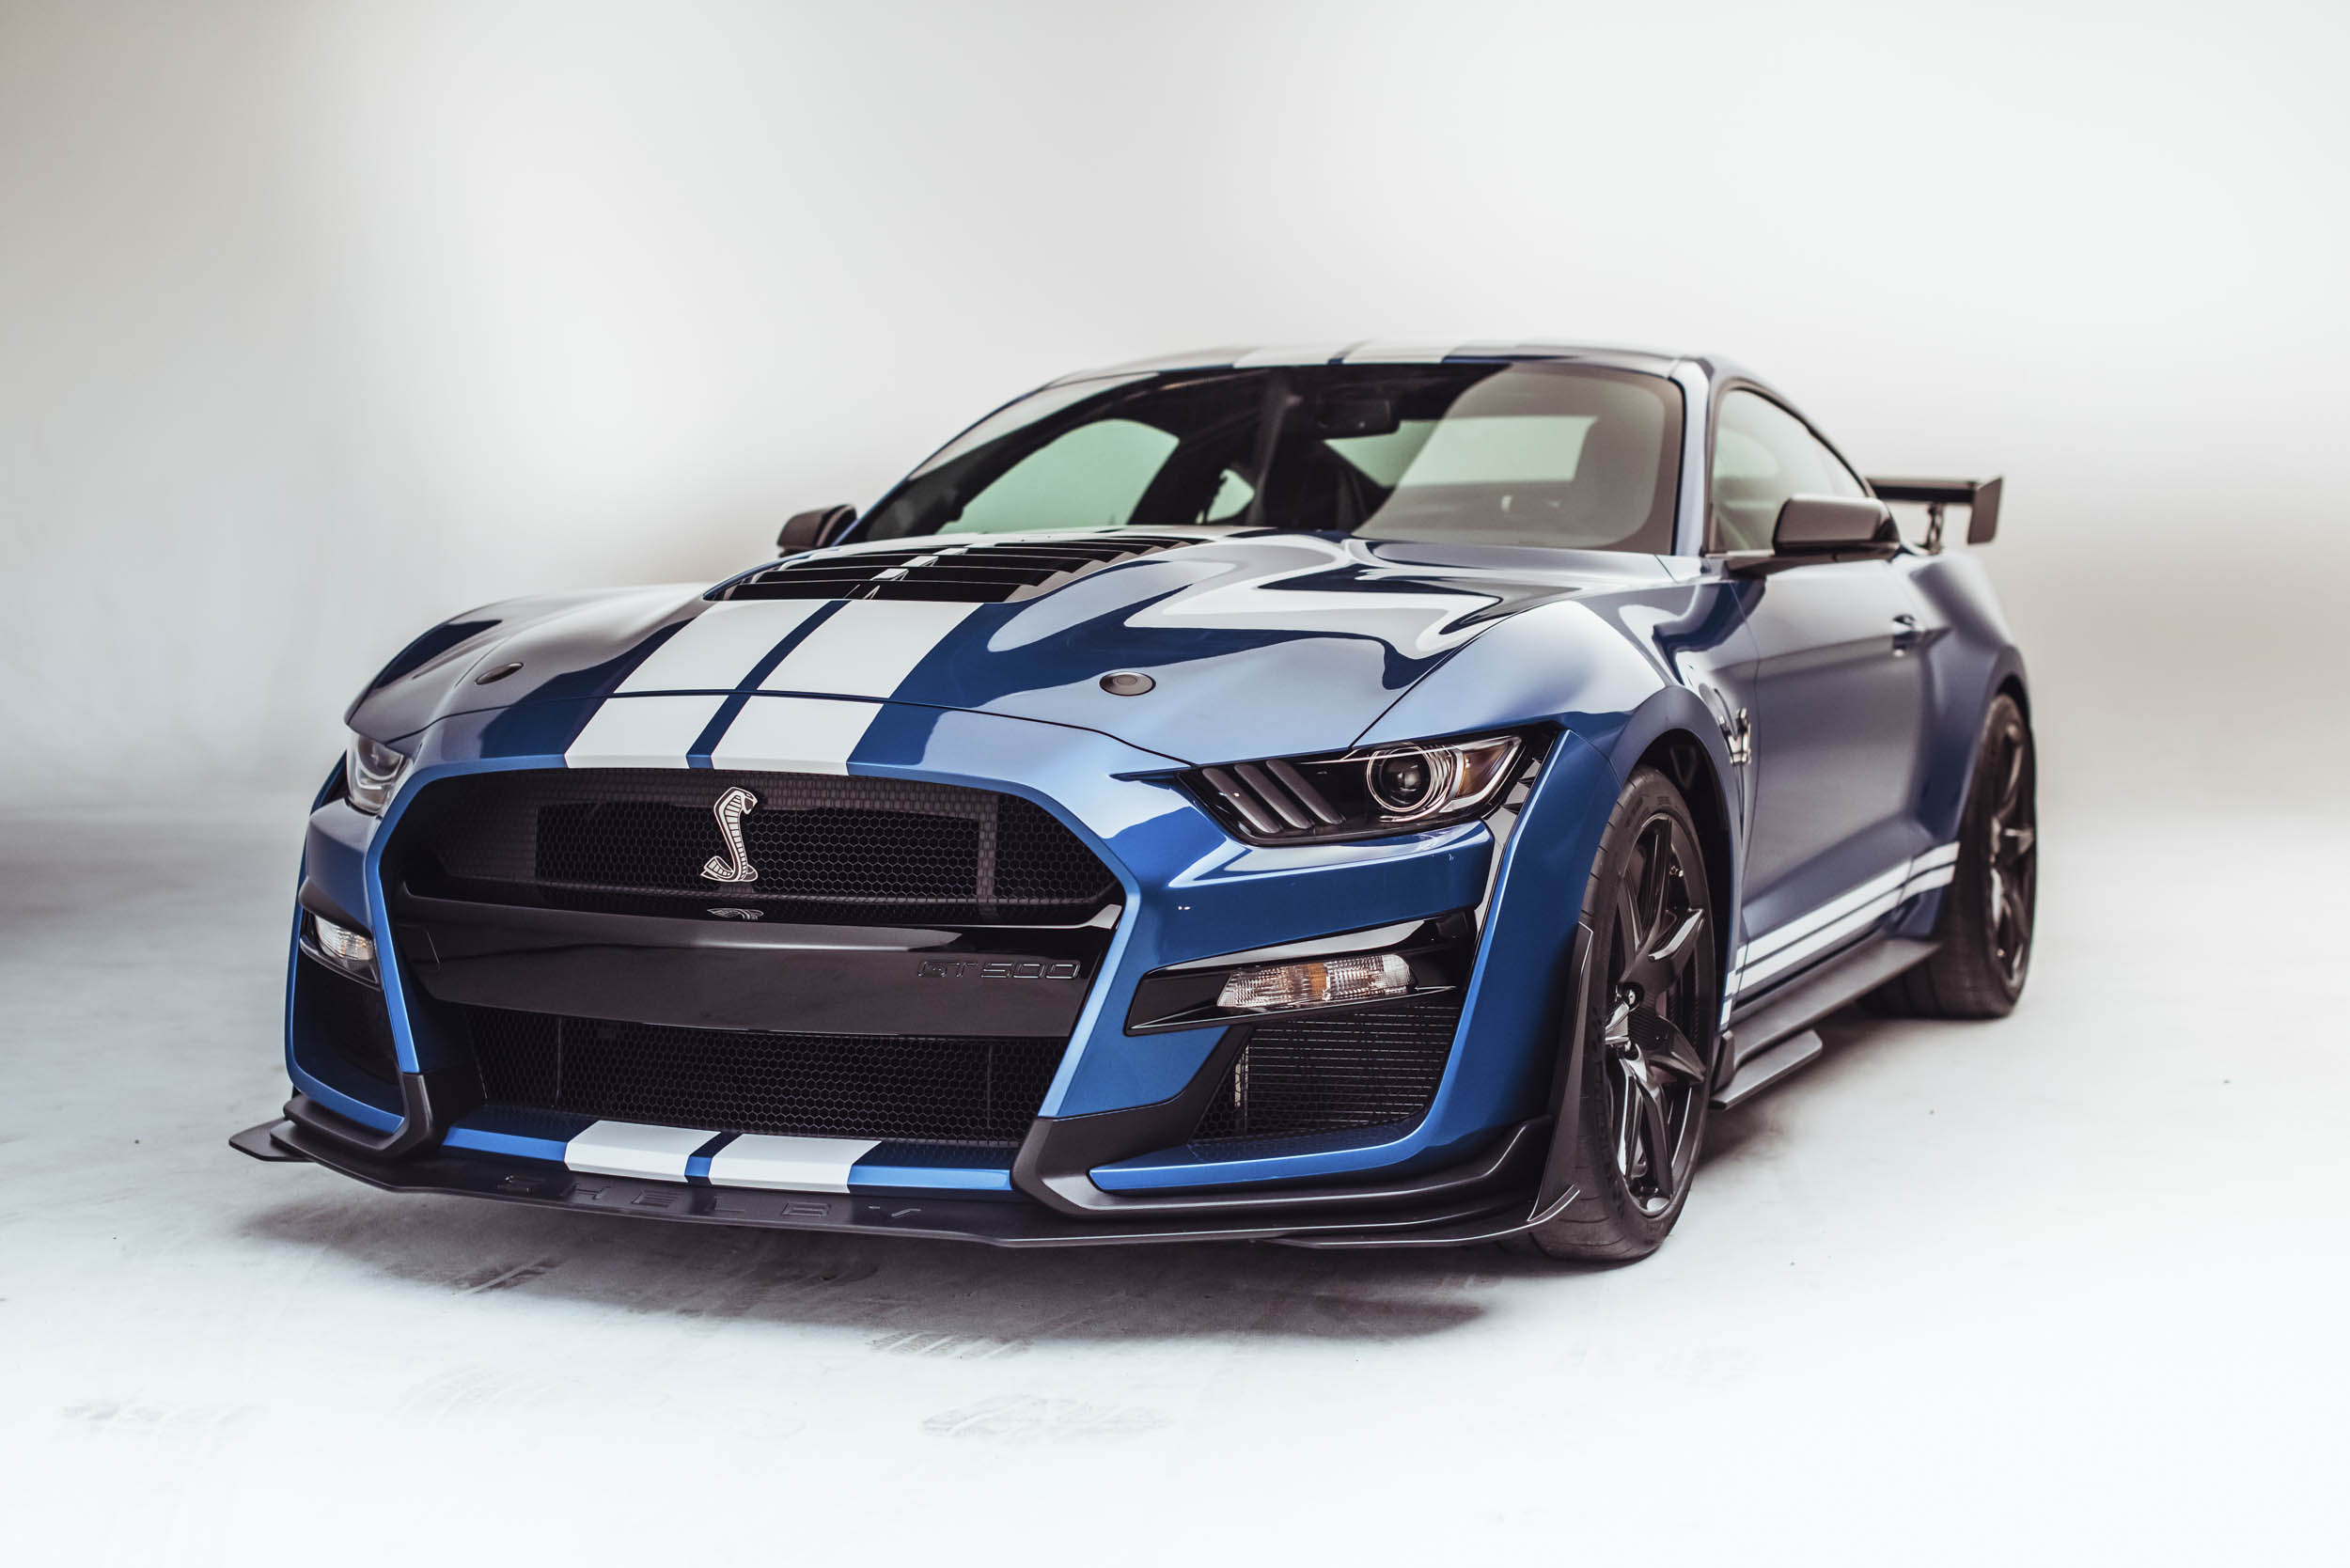 2020 Shelby GT500 low front 3/4